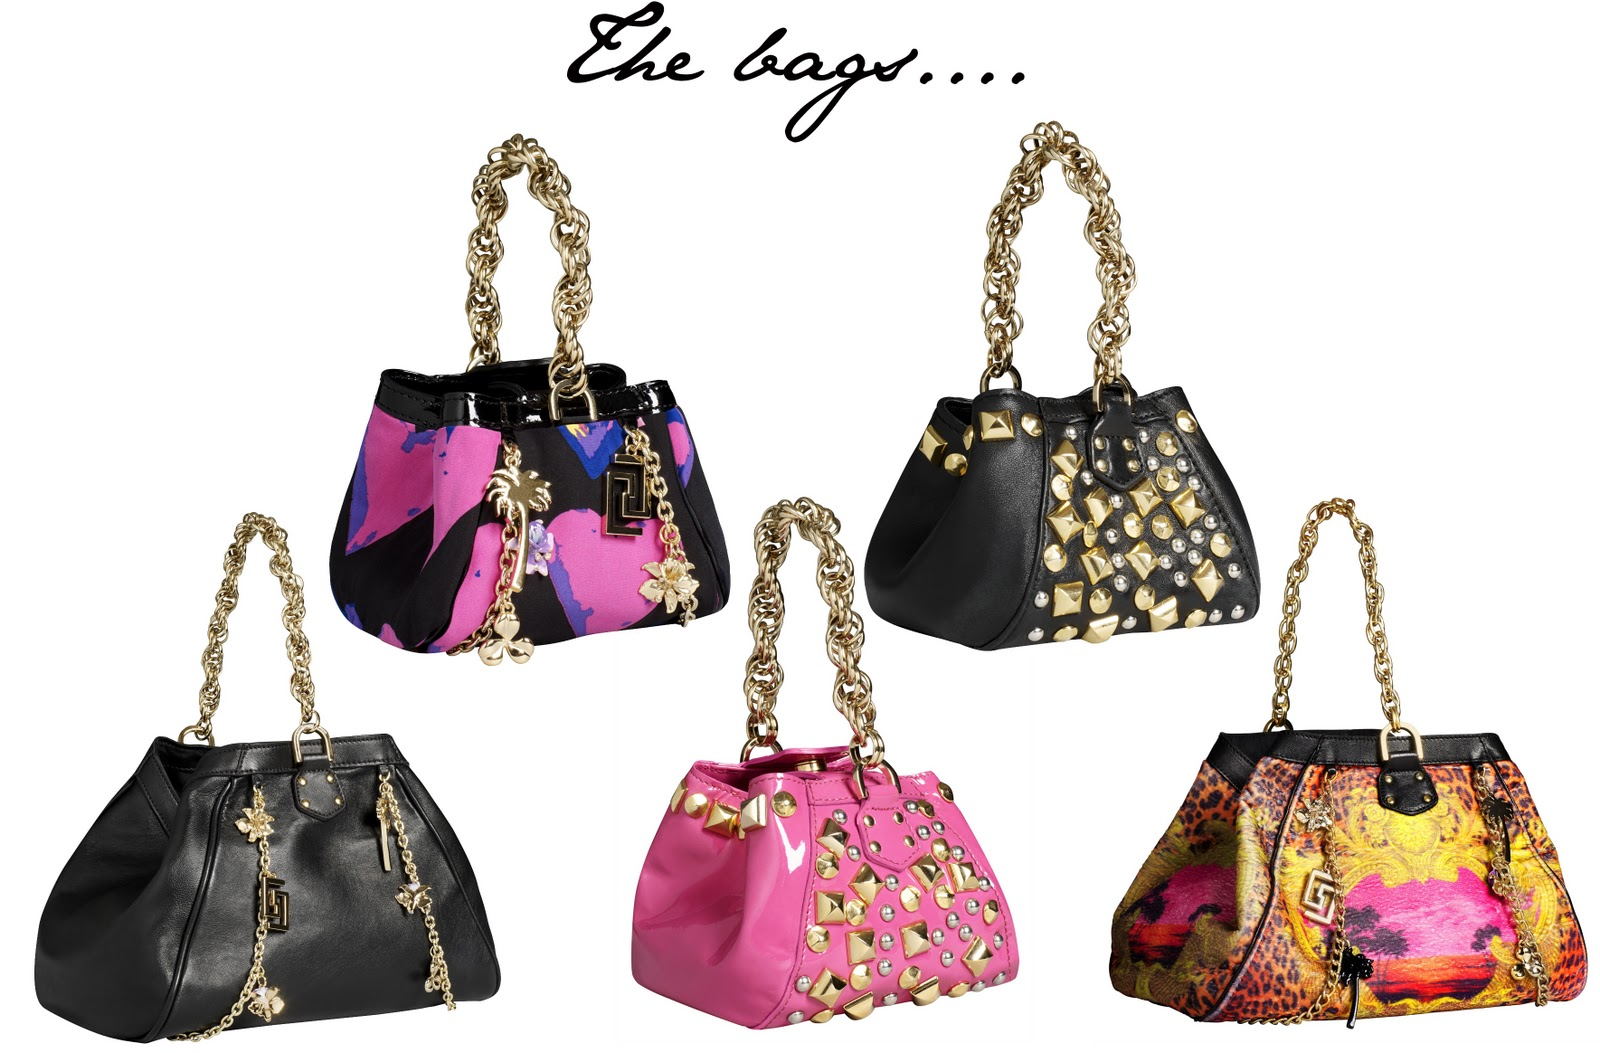 070c41f48cfd Versace for H M  The accessories...bags